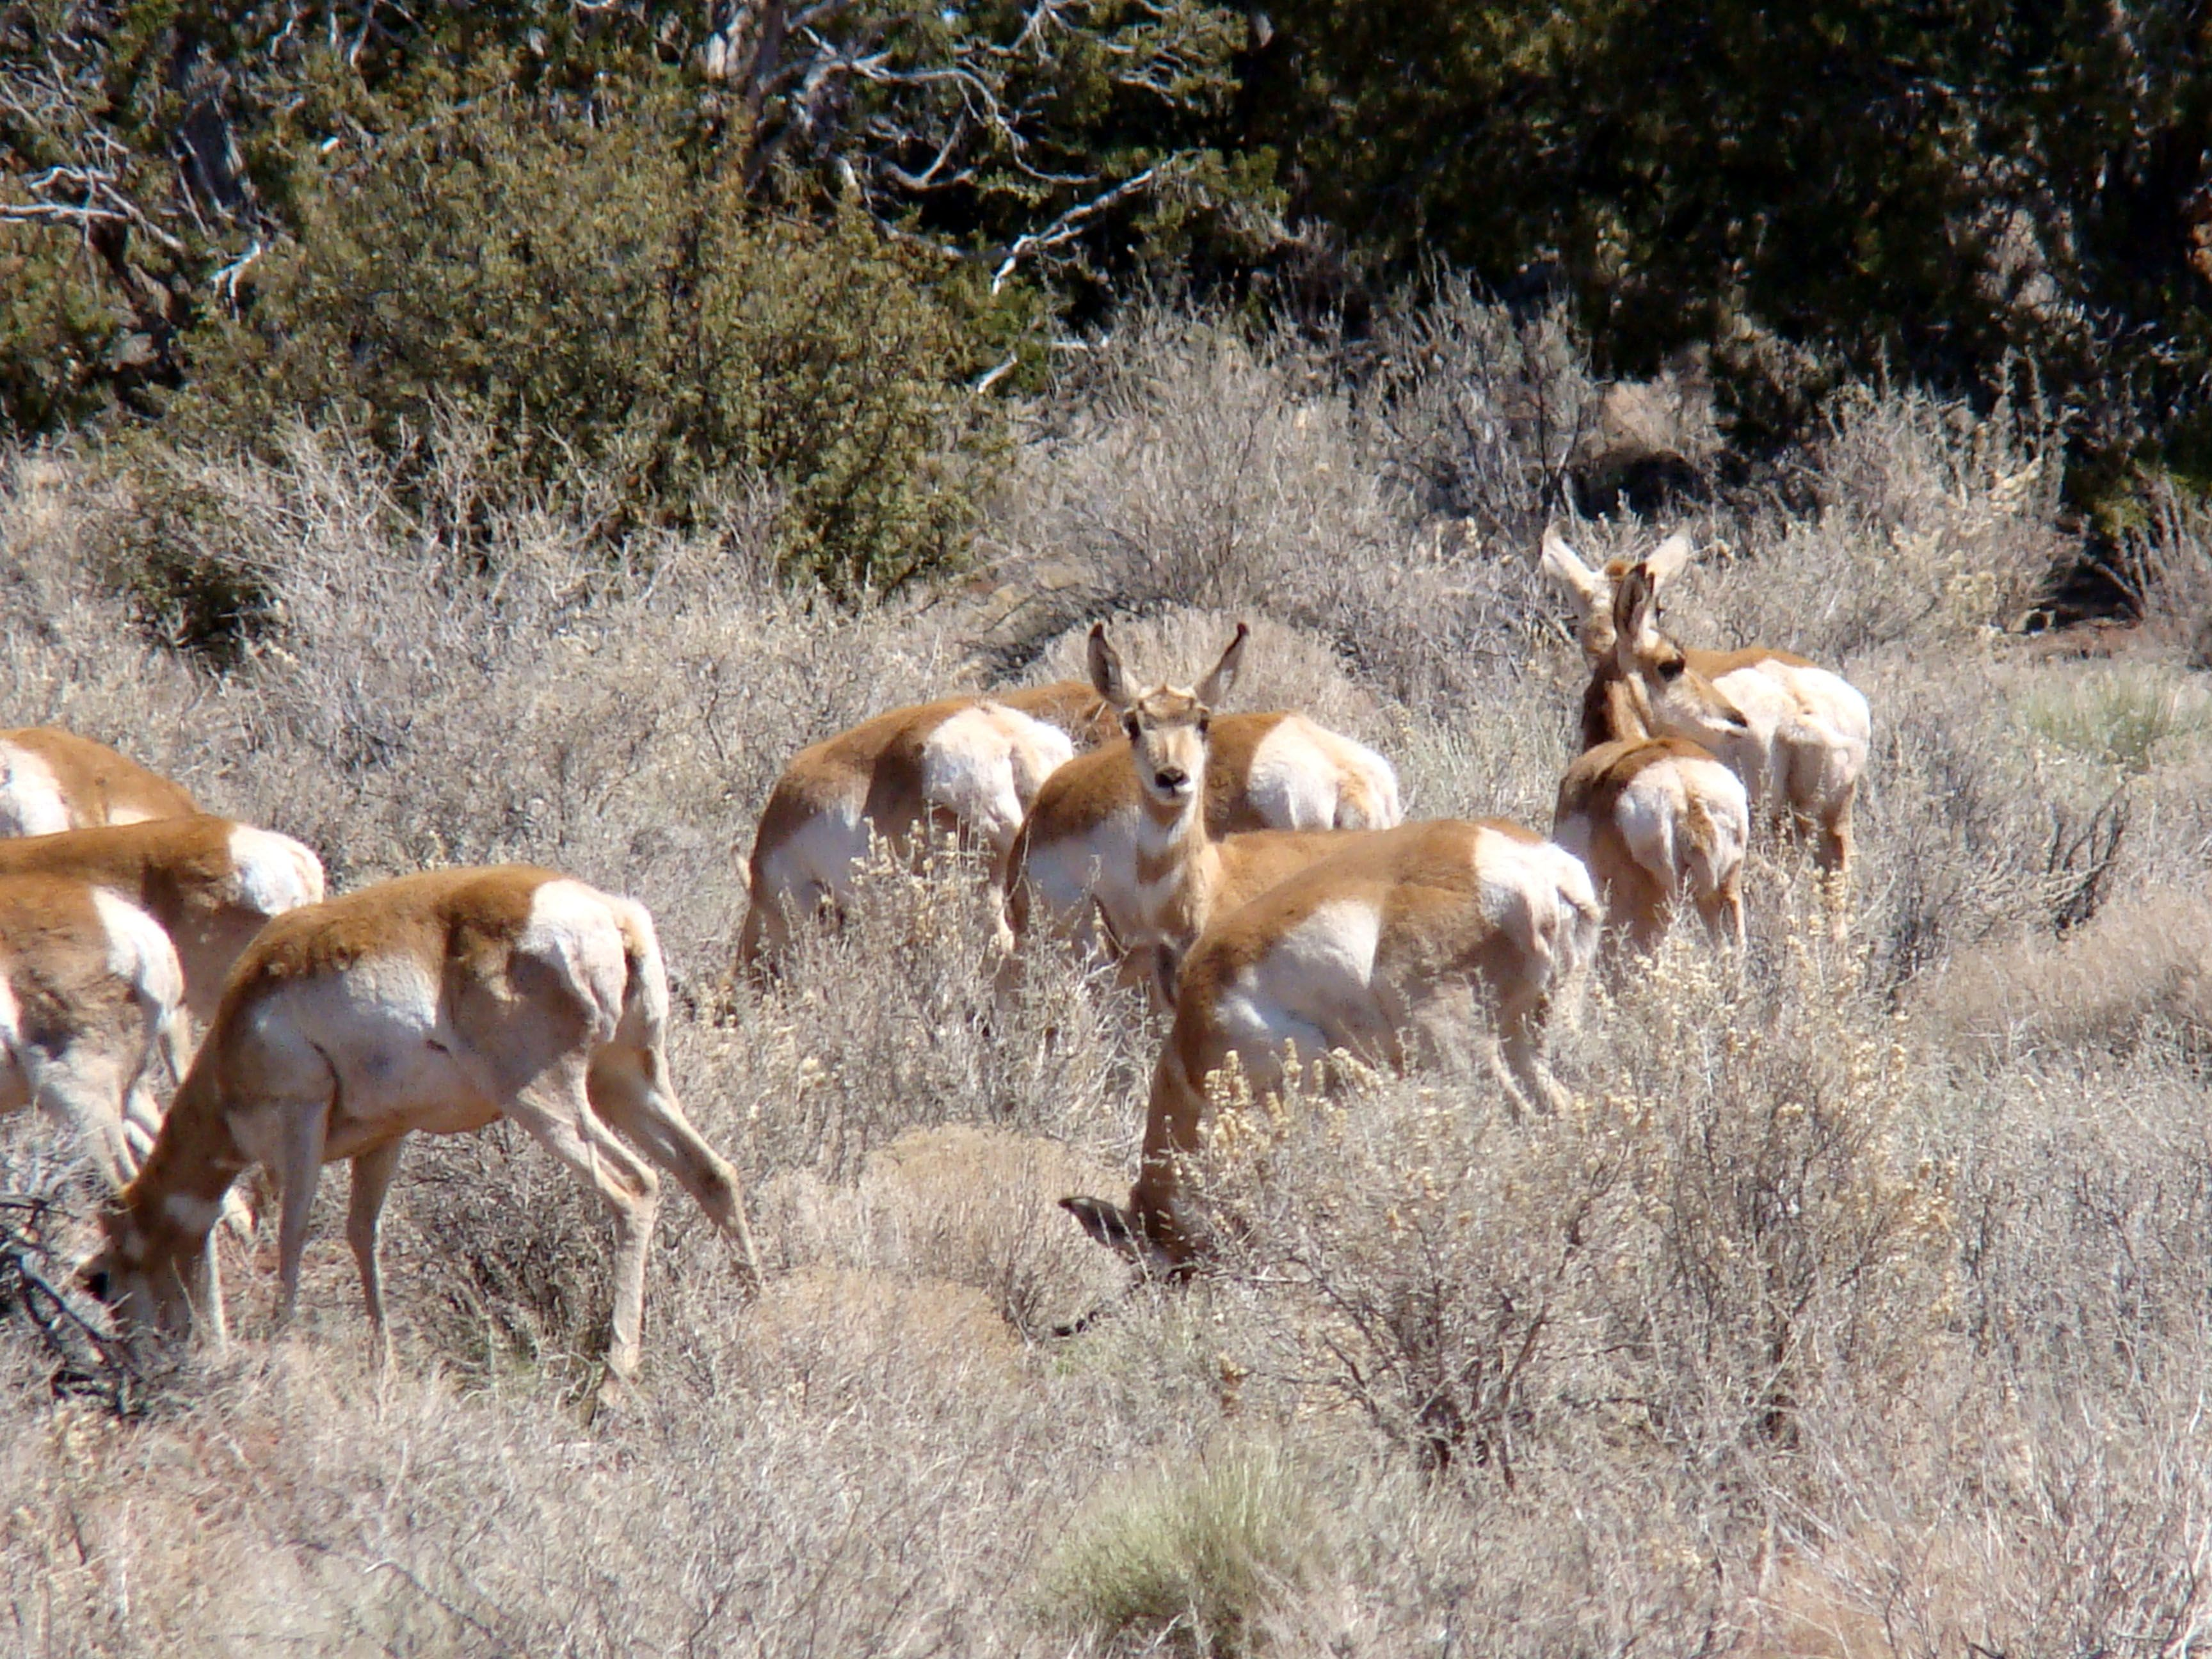 A herd of antelope seen in Kaibab National Forest